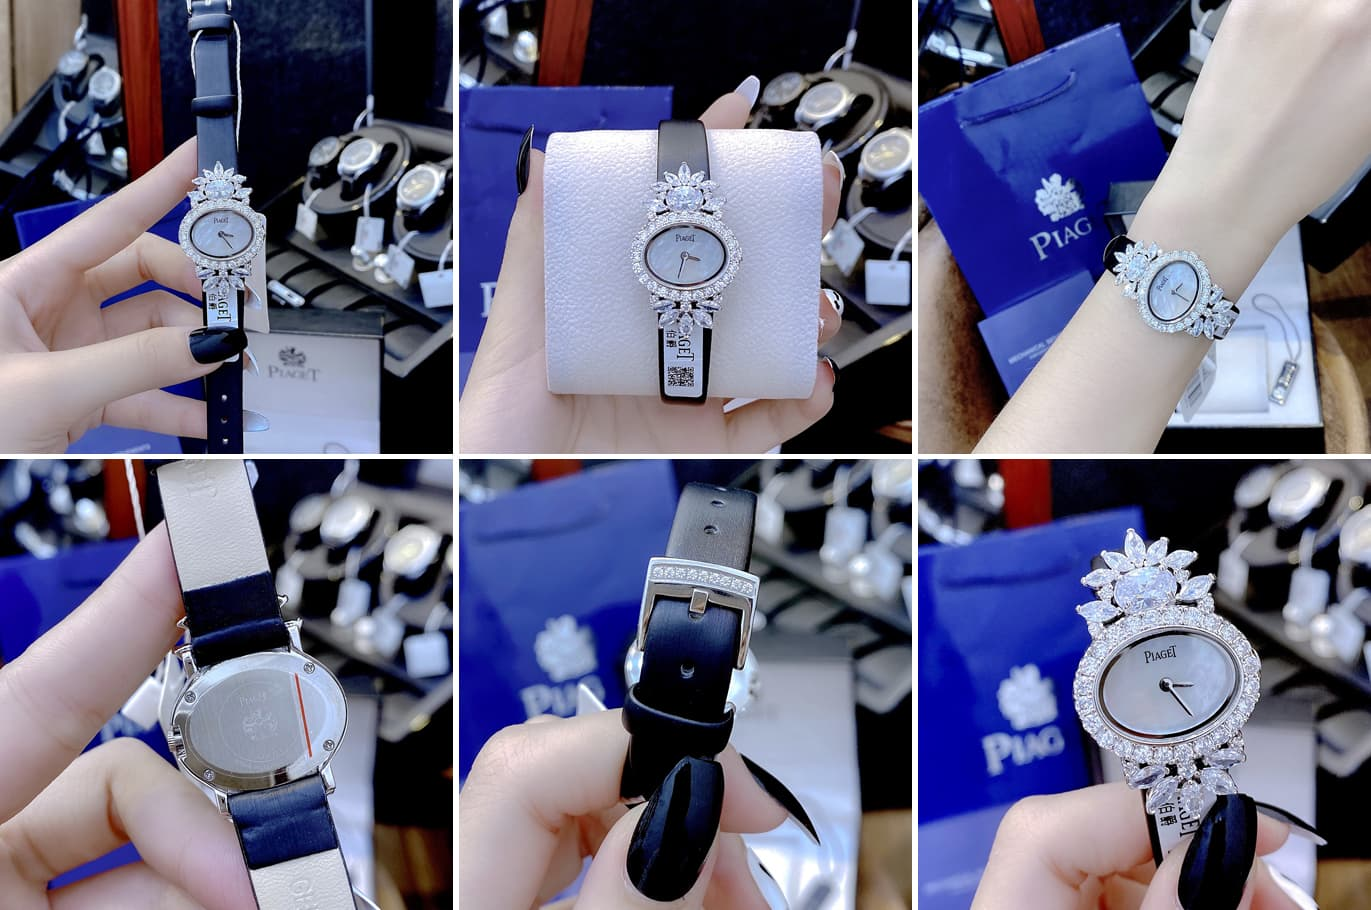 Hinh-anh--thuc-te-Dong-ho-PIAGET-WHITE-GOLD-SAPPHIRE-DIAMOND-LUXURY